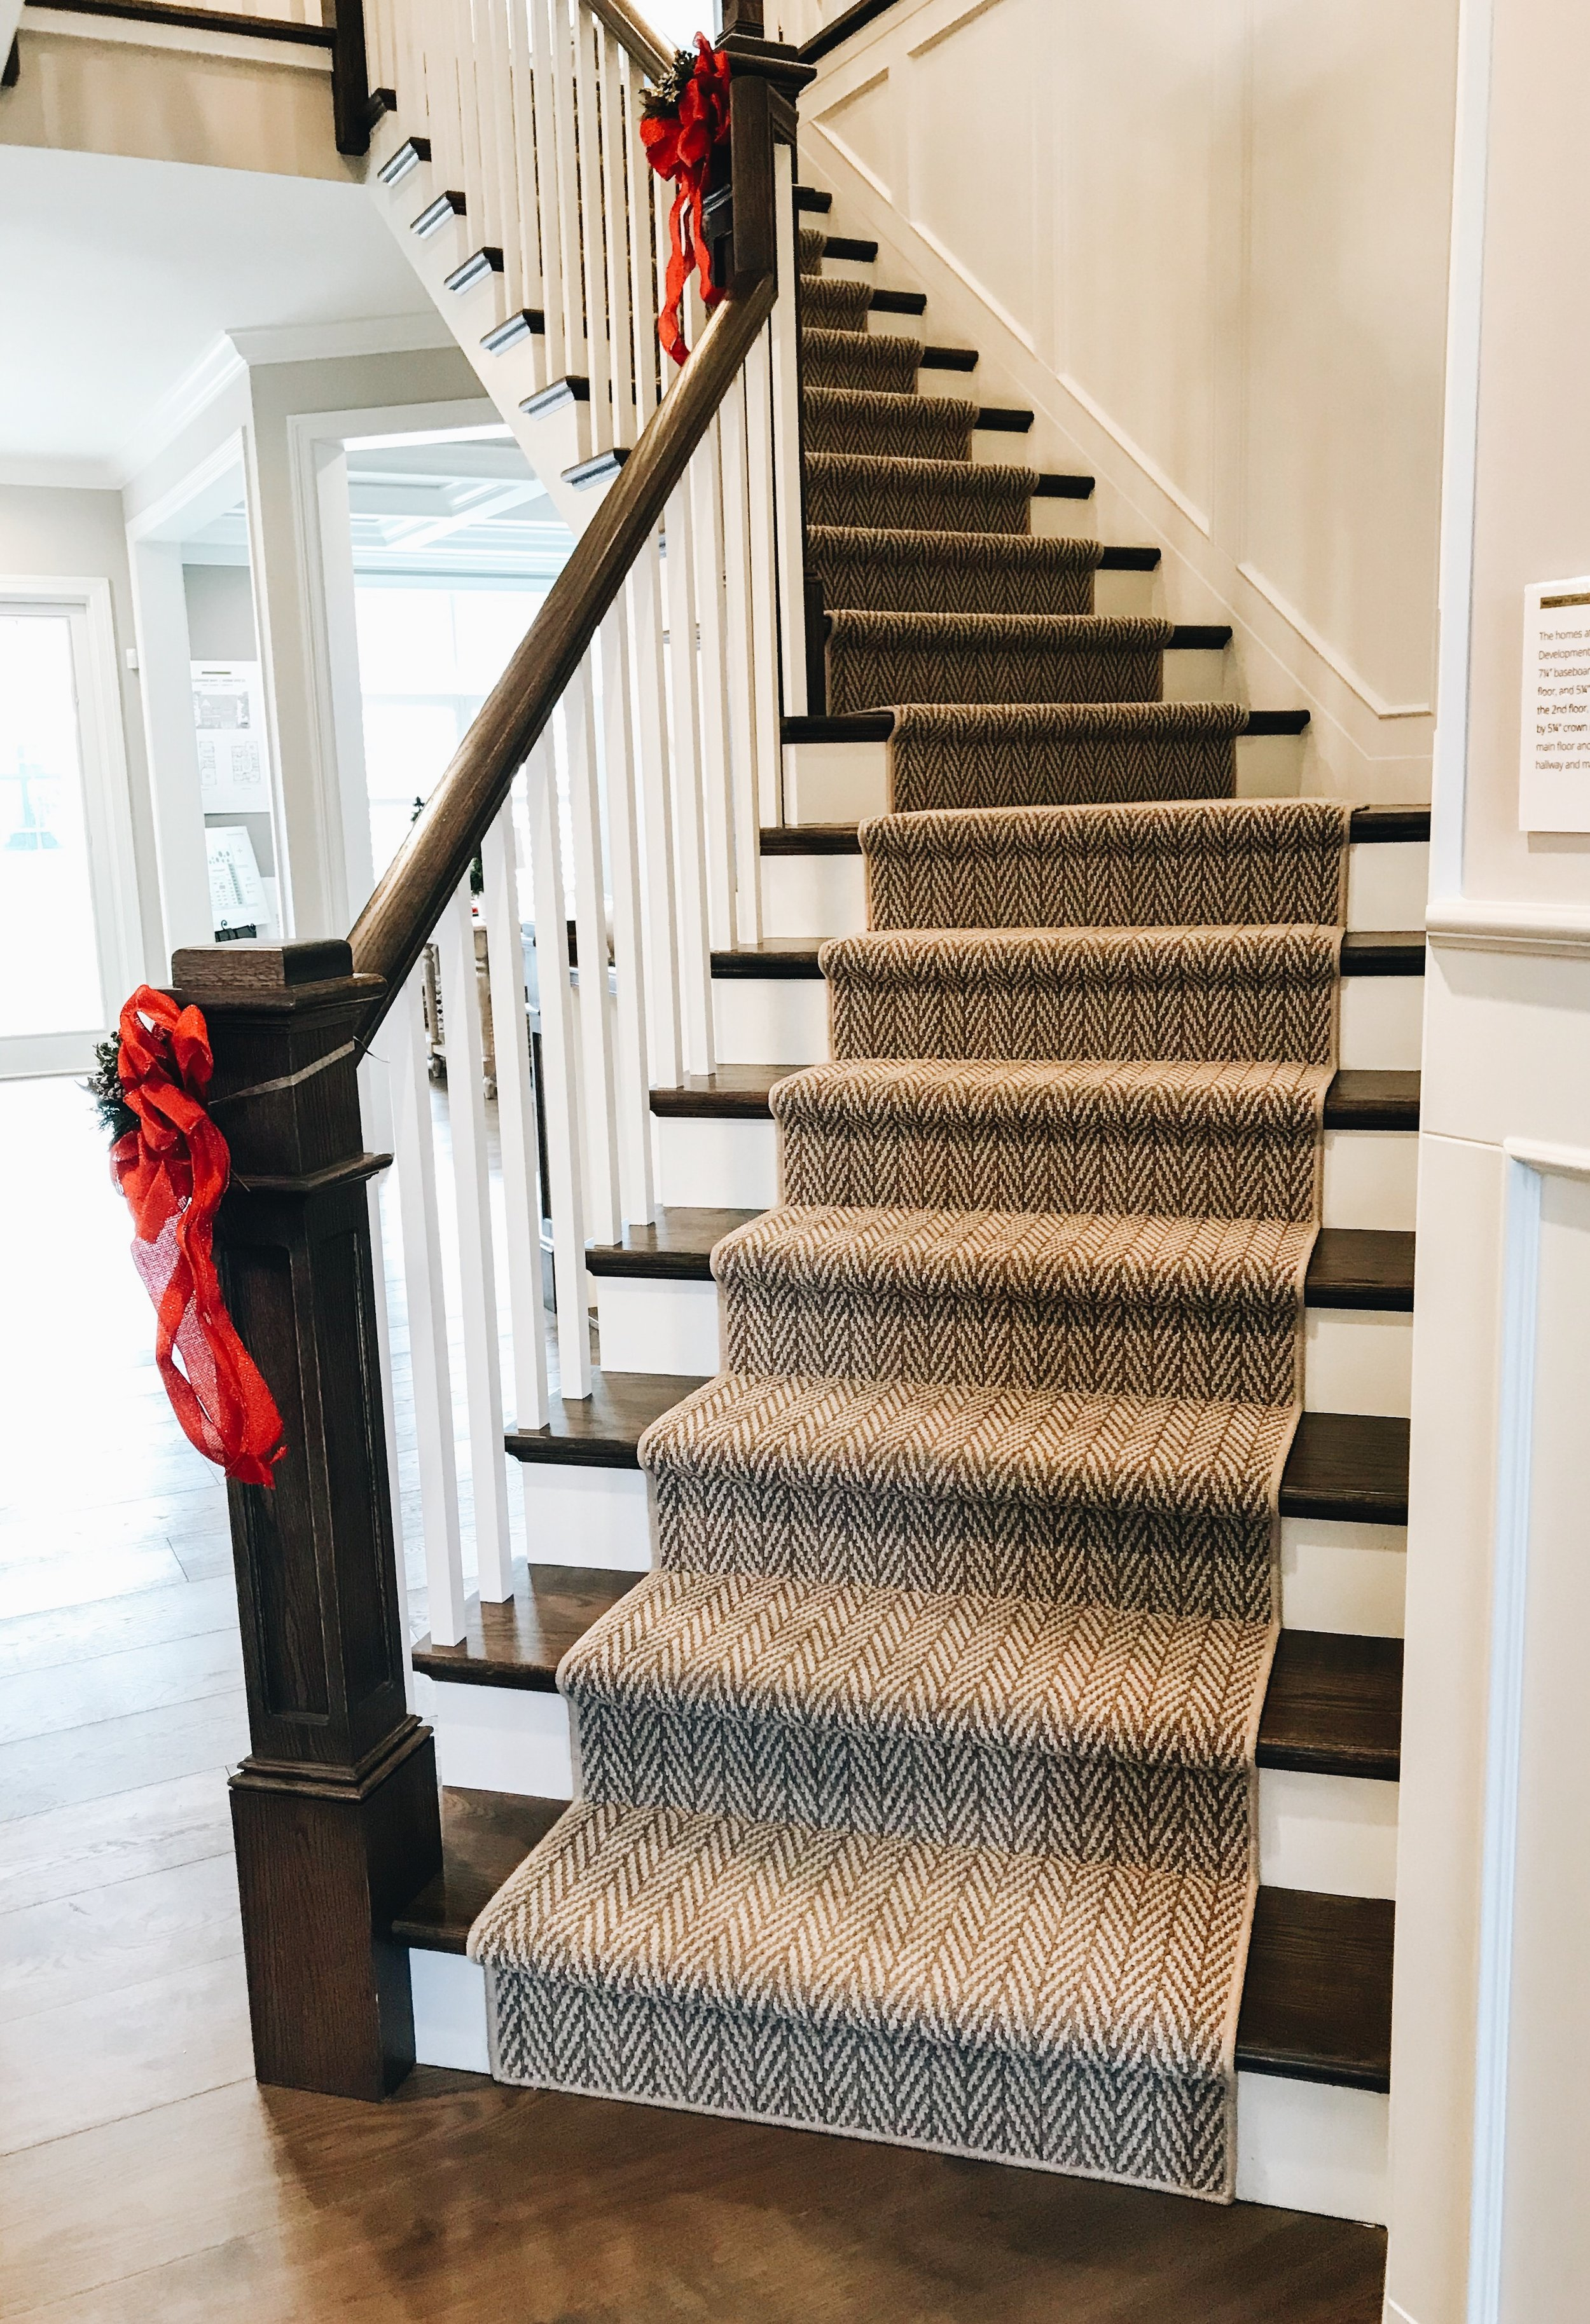 Beautiful Winding Staircase. Runner for stairs. Painted and stained stairs.